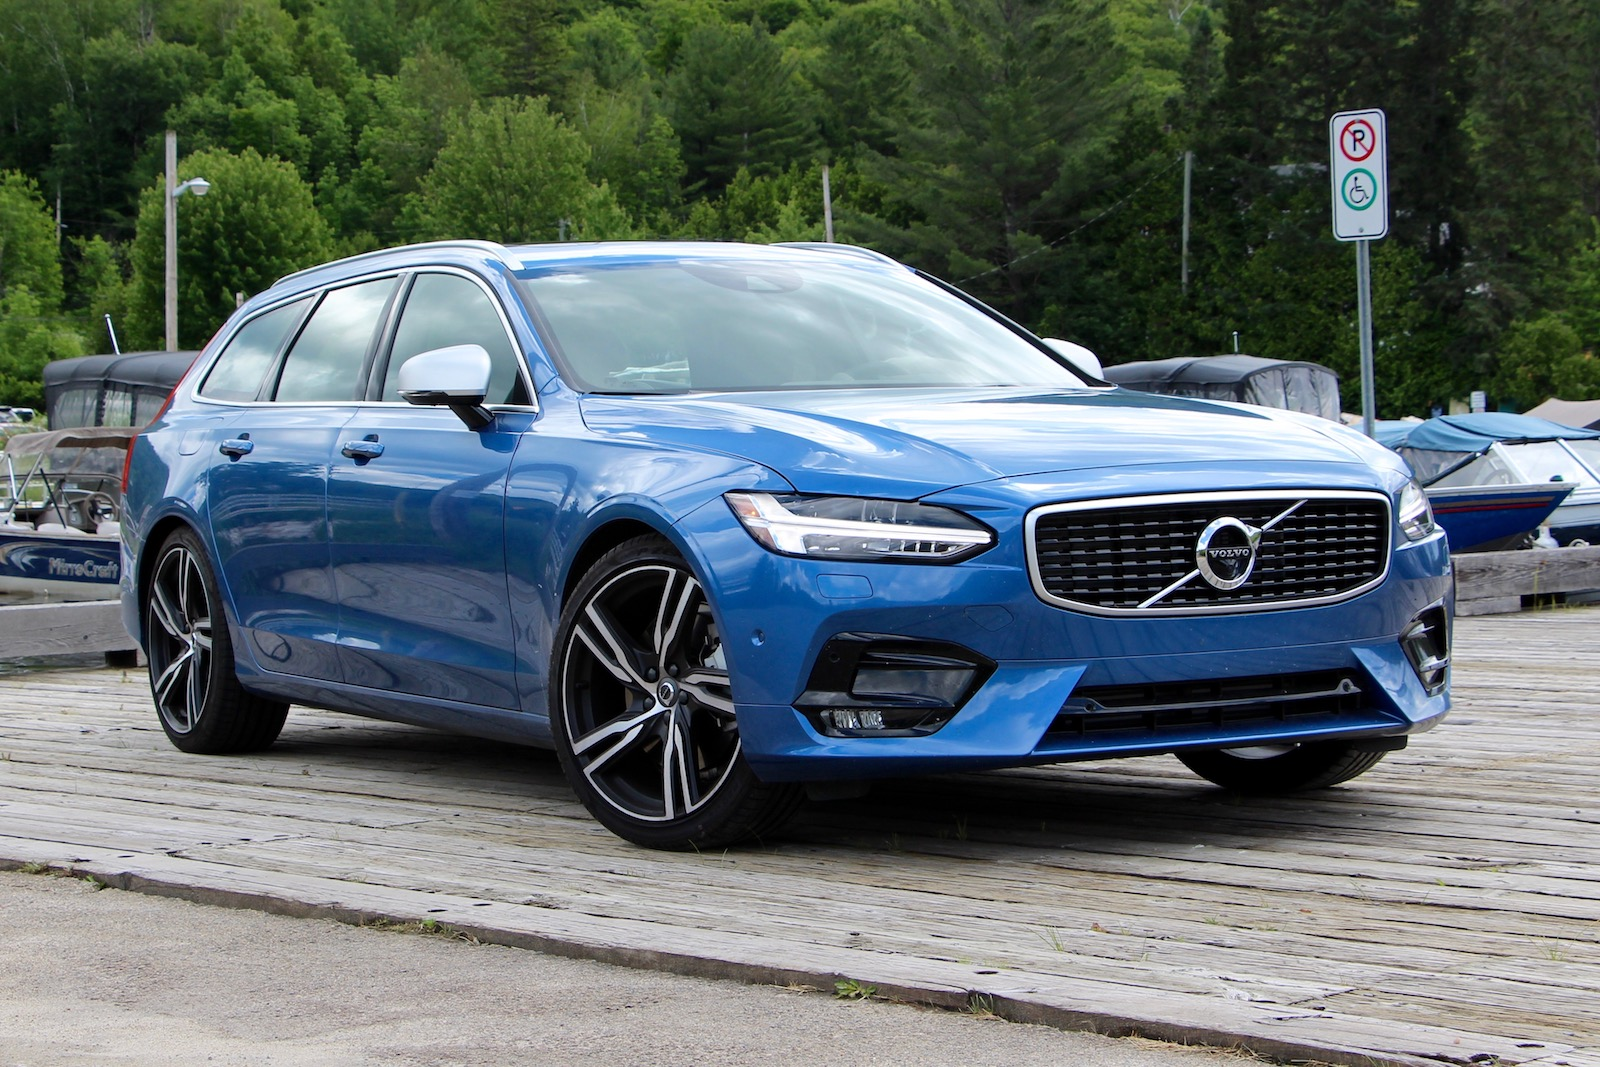 2018 Volvo S60 Release Date >> 2017 Volvo V90 Cross Country Overview | Autos Post